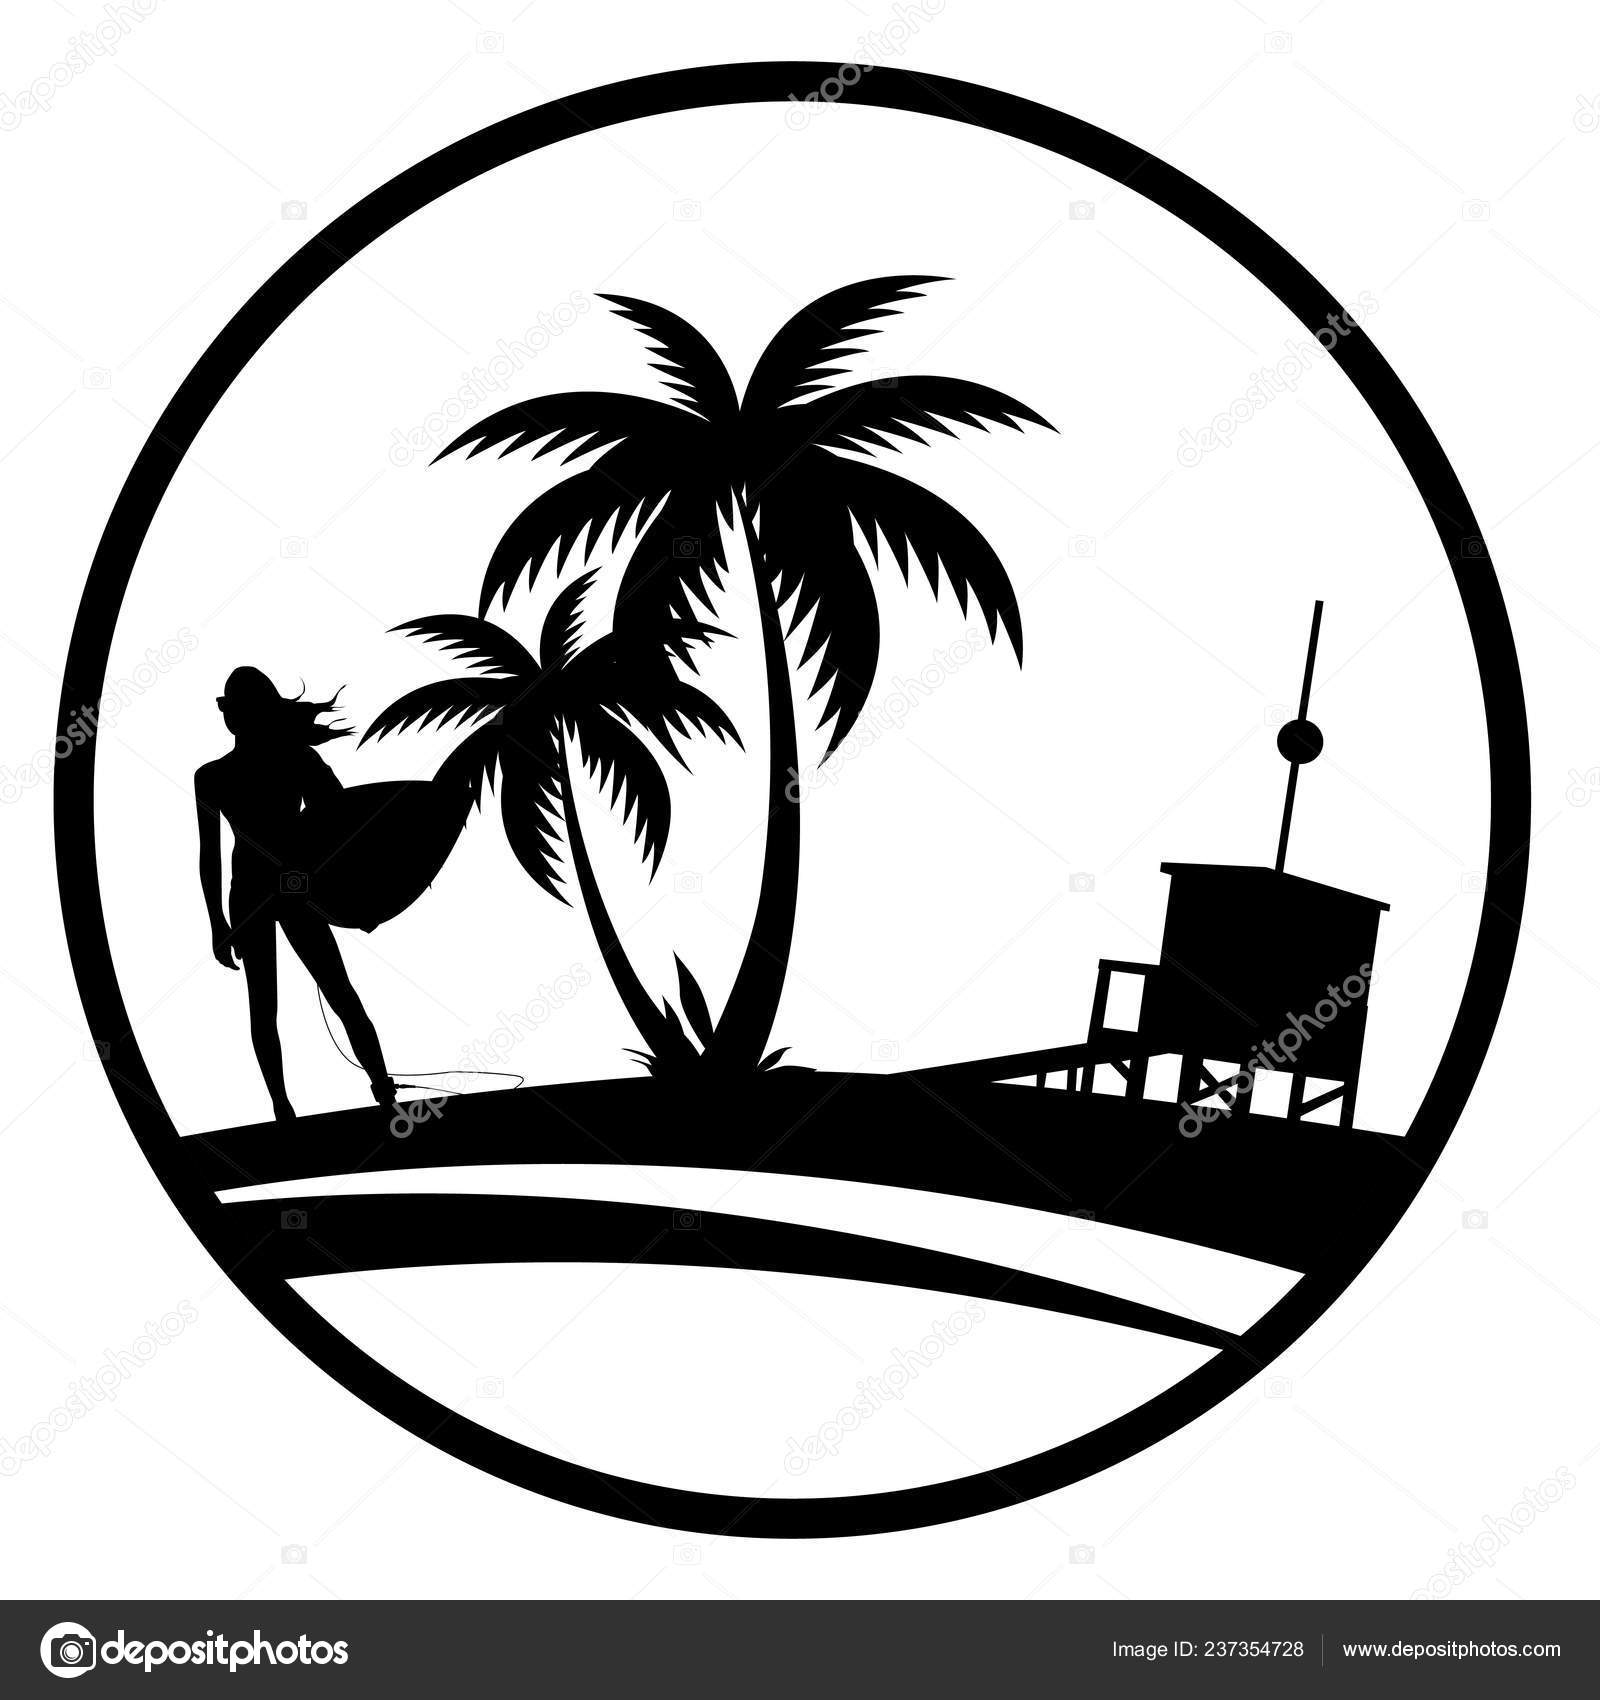 summer icon sexy surfer girl icons stock vector c ii graphics 237354728 https depositphotos com 237354728 stock illustration summer icon sexy surfer girl html